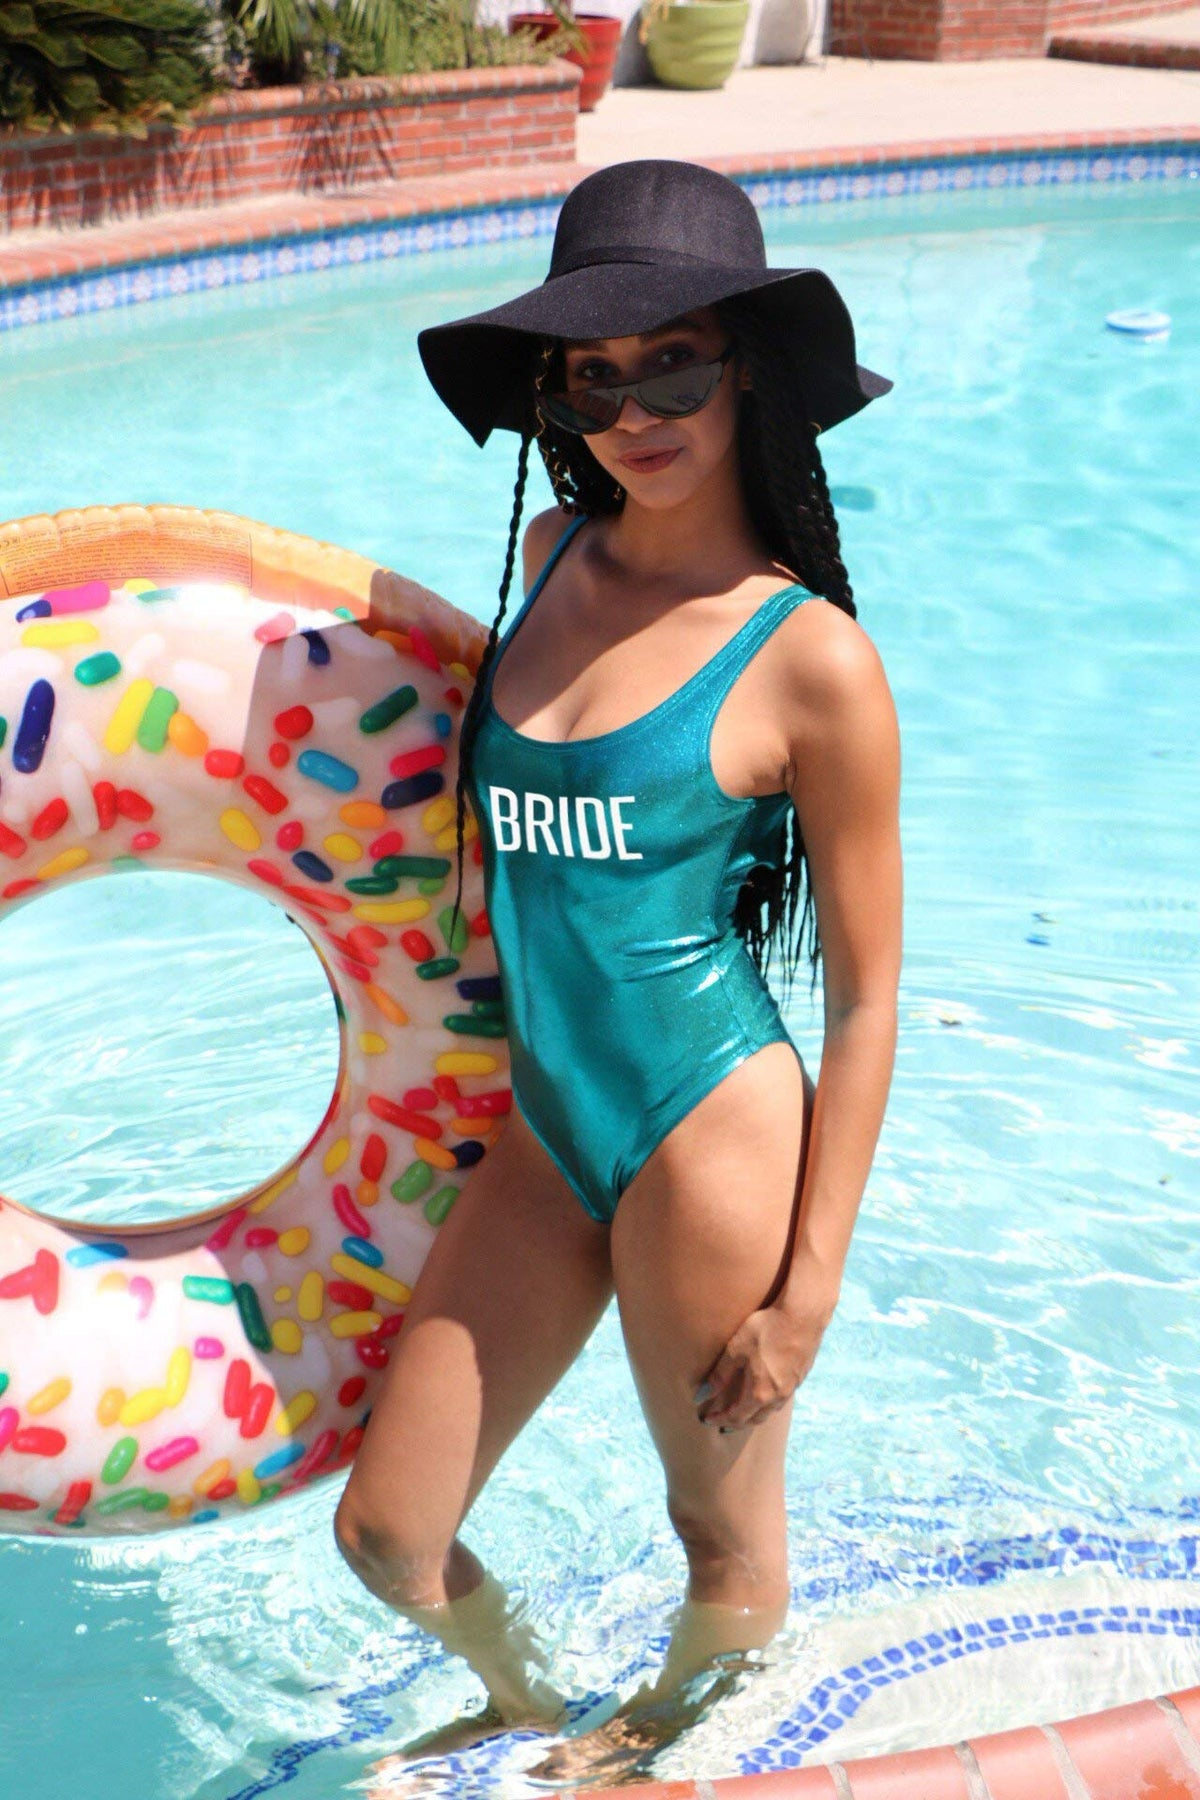 BRIDE Glossy White One piece Swimsuit , Holographic Bathing Suit, Printed Bathing Suit, Gold Printing, Bride Swimsuit, DSY Lifestyle Swimwear, Turquoise Swimsuit, Made in LA